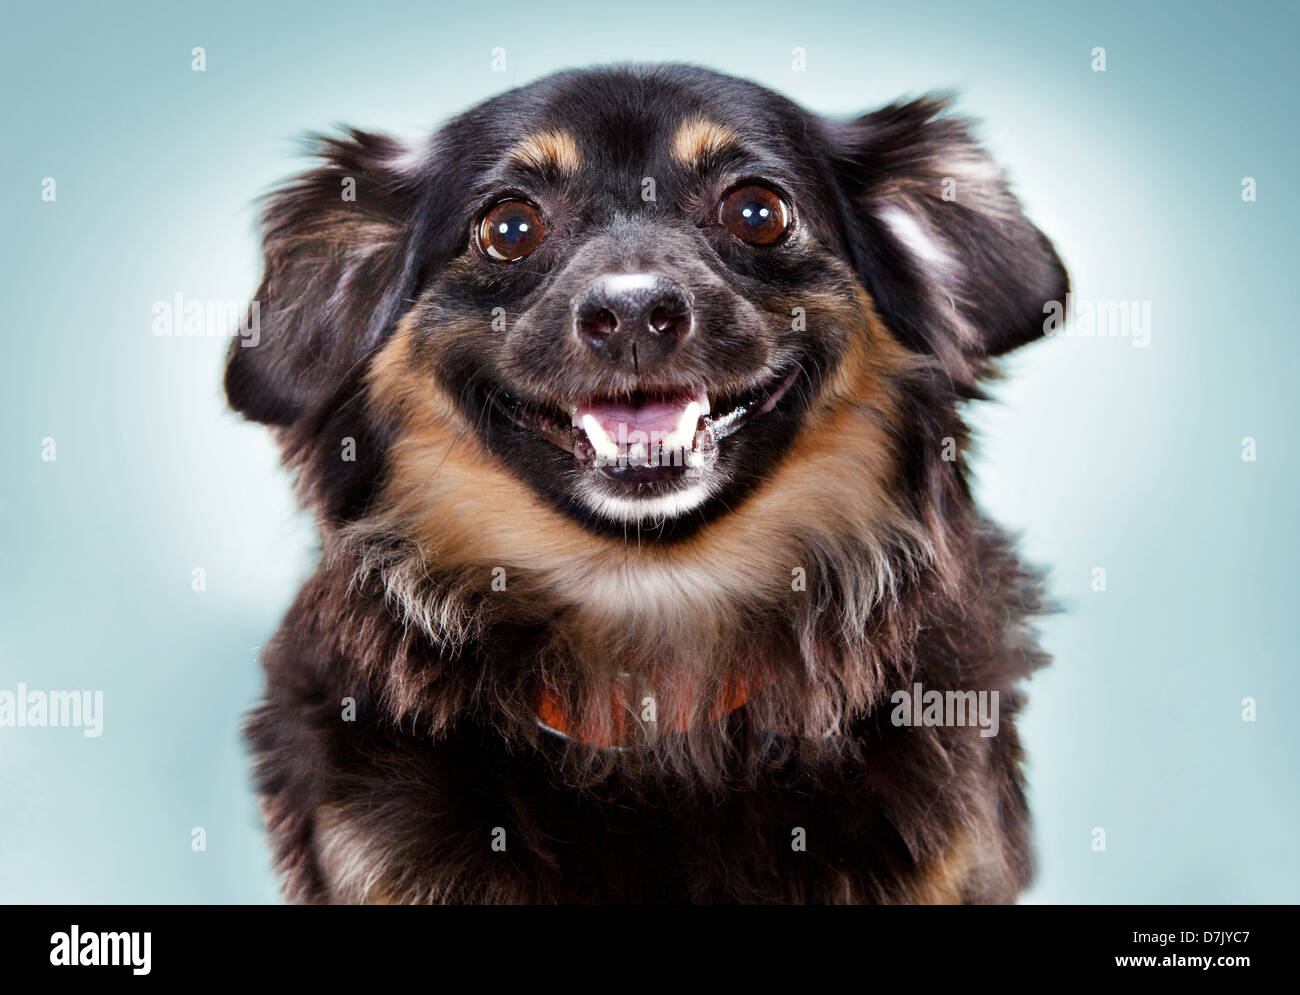 Dachshund Chihuahua Mix Breed Dog Gazing To Camera Stock Photo